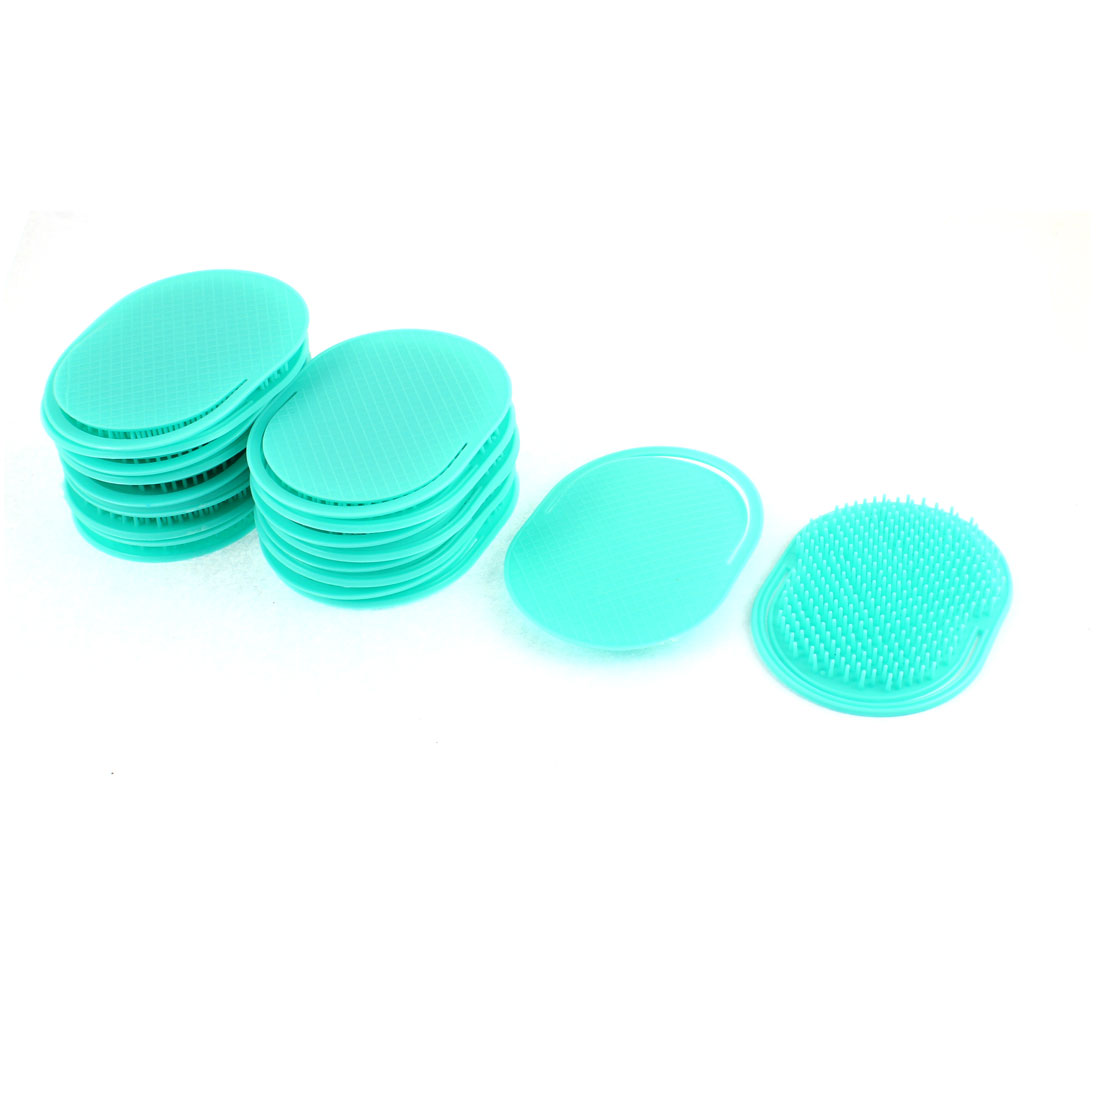 "Oval Shaped Hair Comb Scalp Massage Brush Teal Green 4"" Length 20Pcs"